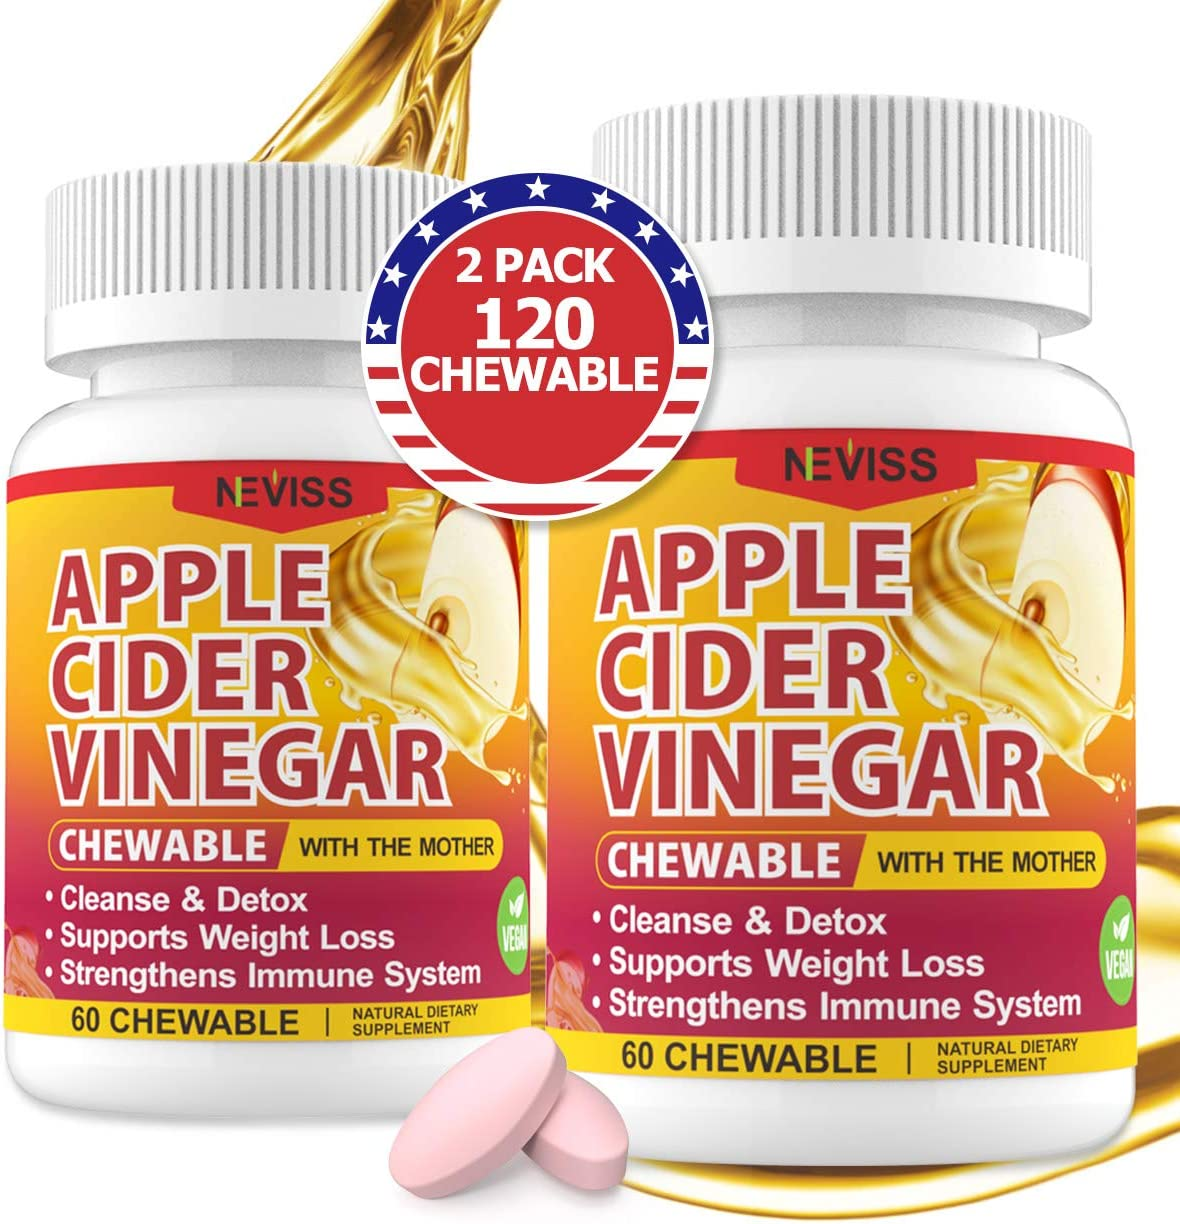 (2 Pack)Organic Apple Cider Vinegar Pills with The Mother for Weight Loss, Detox & Cleanse, ACV Pills for Women, Vegan Apple Cider Vinegar Tablets 1000mg Alternative to ACV Gummies, Capsules-120 Tabs